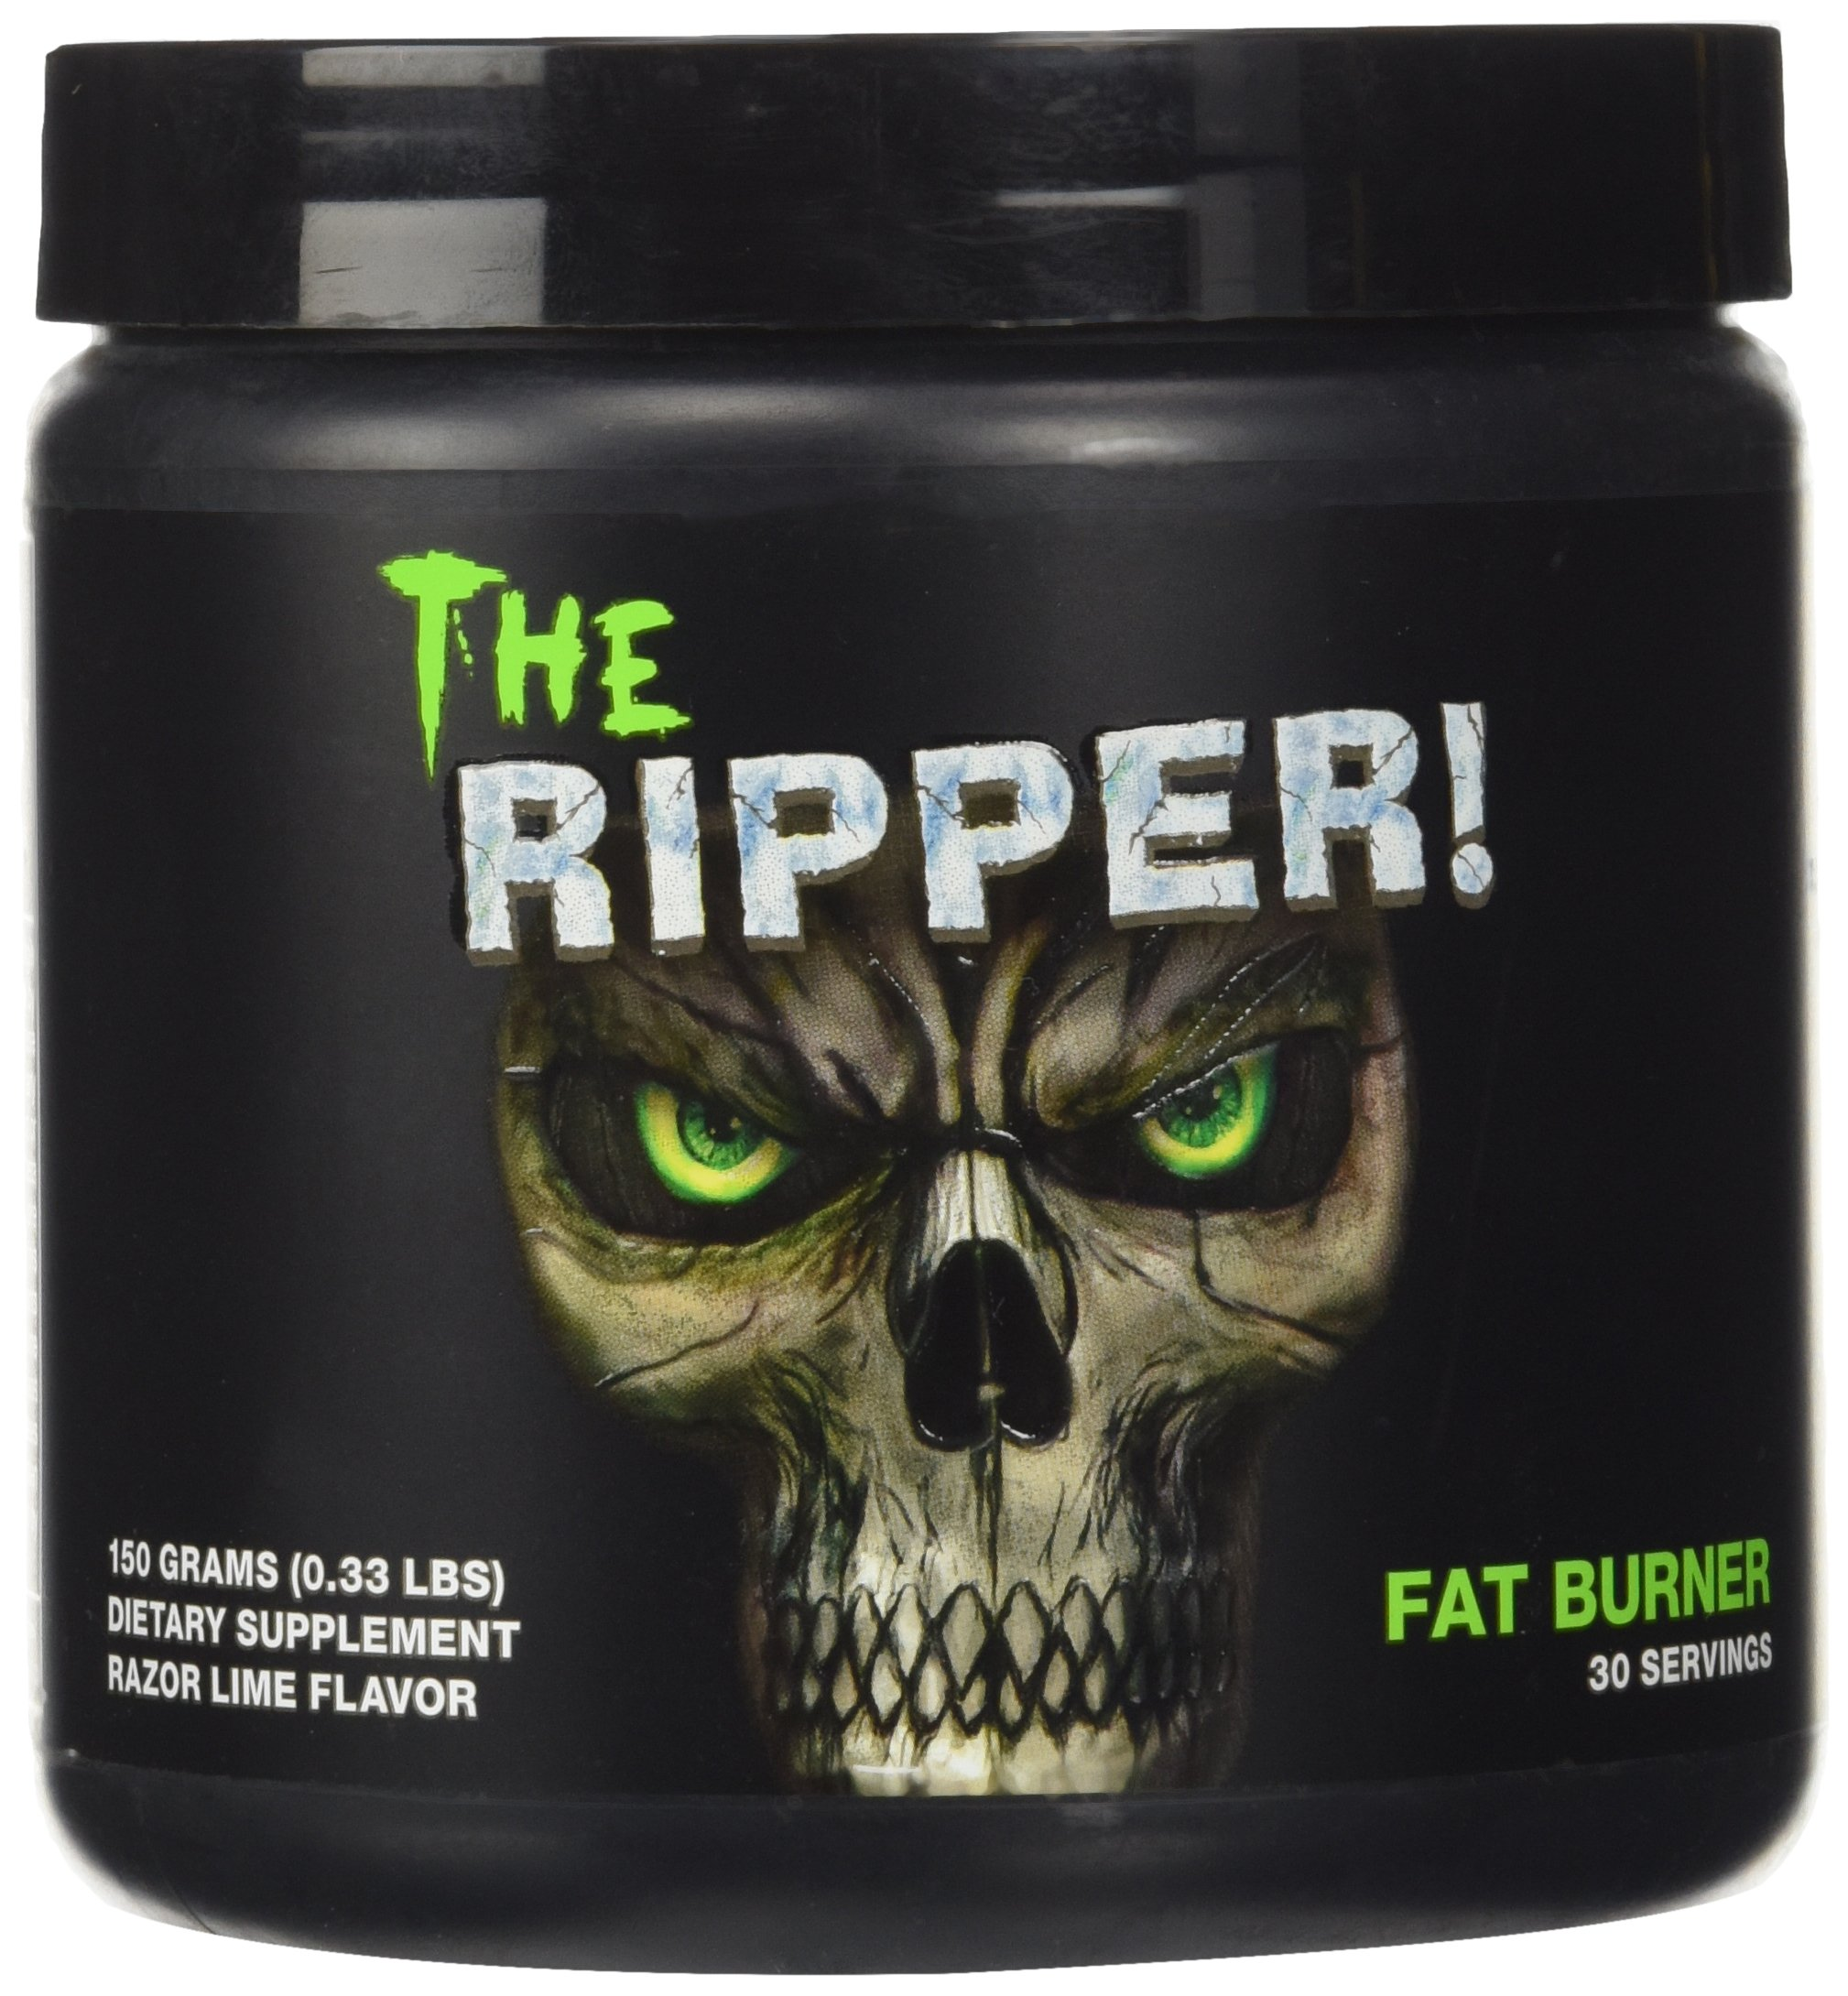 Cobra Labs The Ripper Weight Loss Supplement, Razor Lime, 30 Servings, 0.33 Pound by Cobra Labs